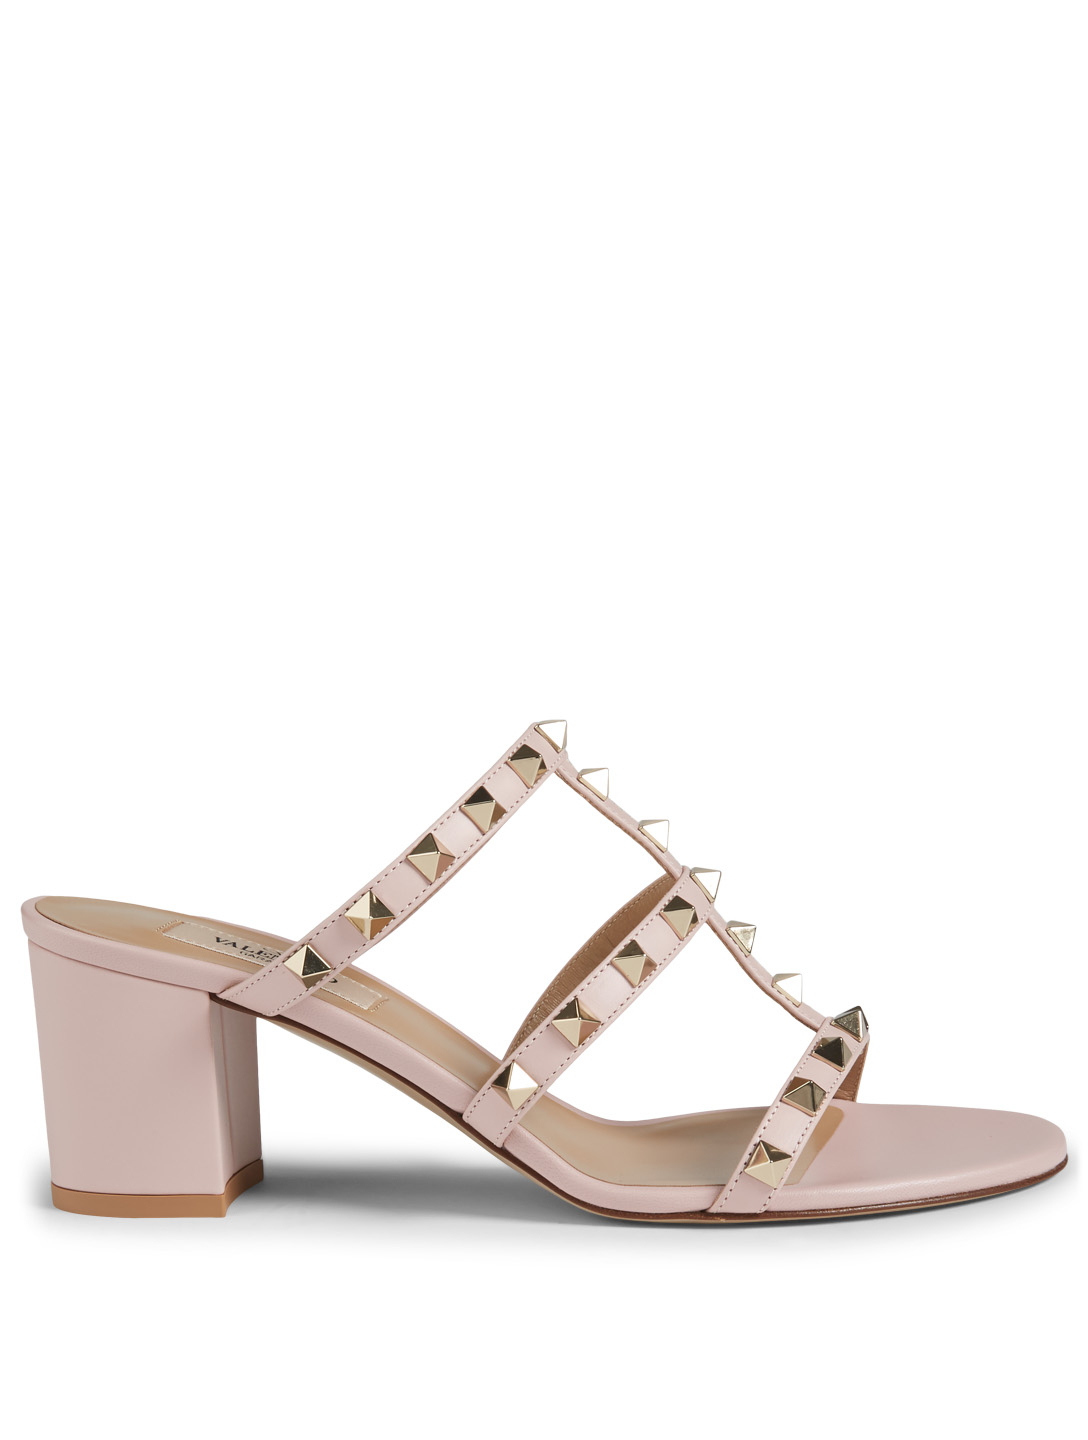 5431b966460 VALENTINO GARAVANI Rockstud Leather Heeled Mule Sandals | Holt Renfrew